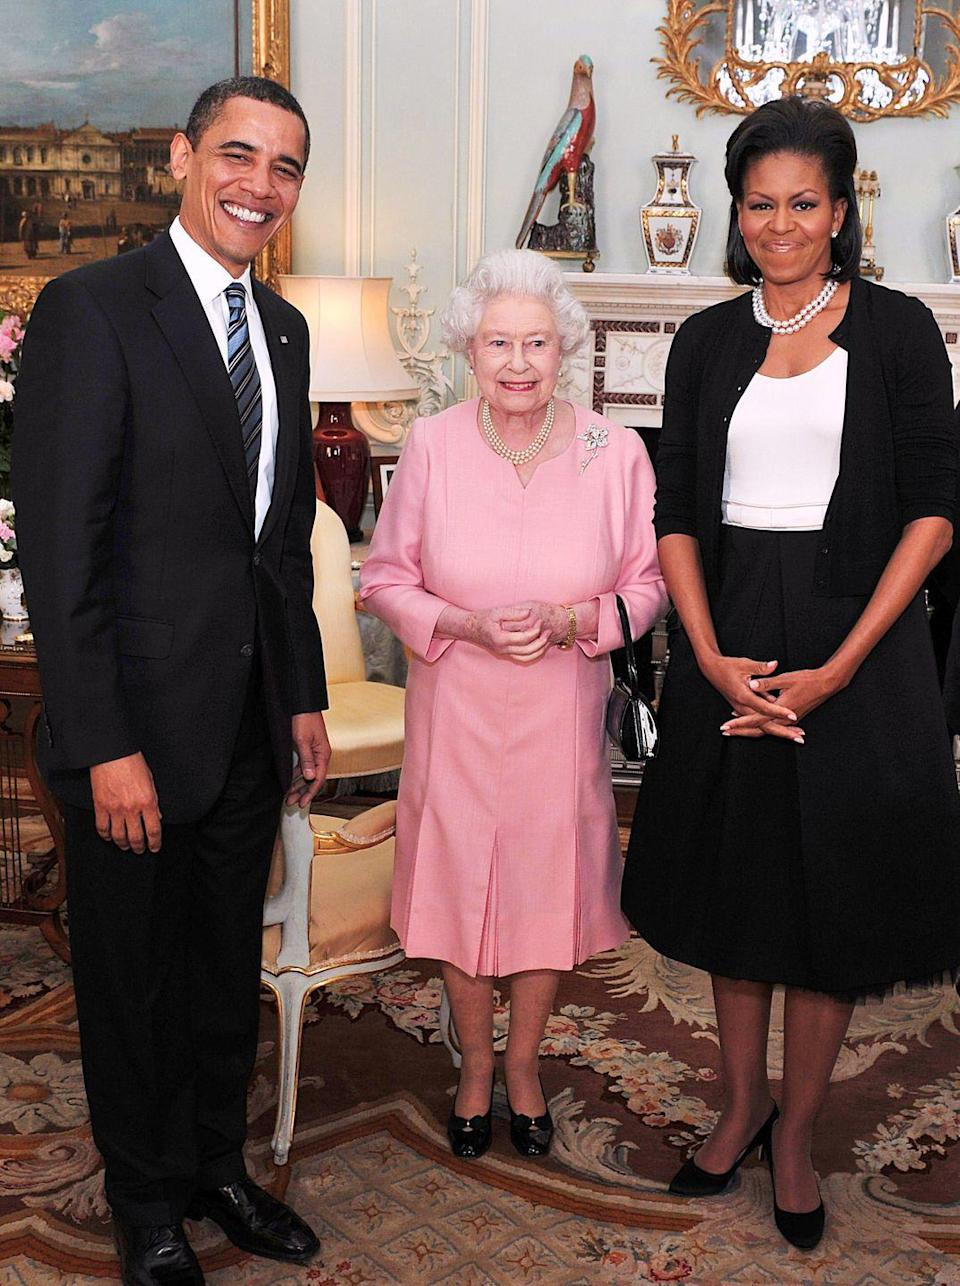 <p>Her Majesty chose a cheerful pink dress for an audience with President Barack Obama and First Lady Michelle Obama at Buckingham Palace on April 1, 2009.</p>